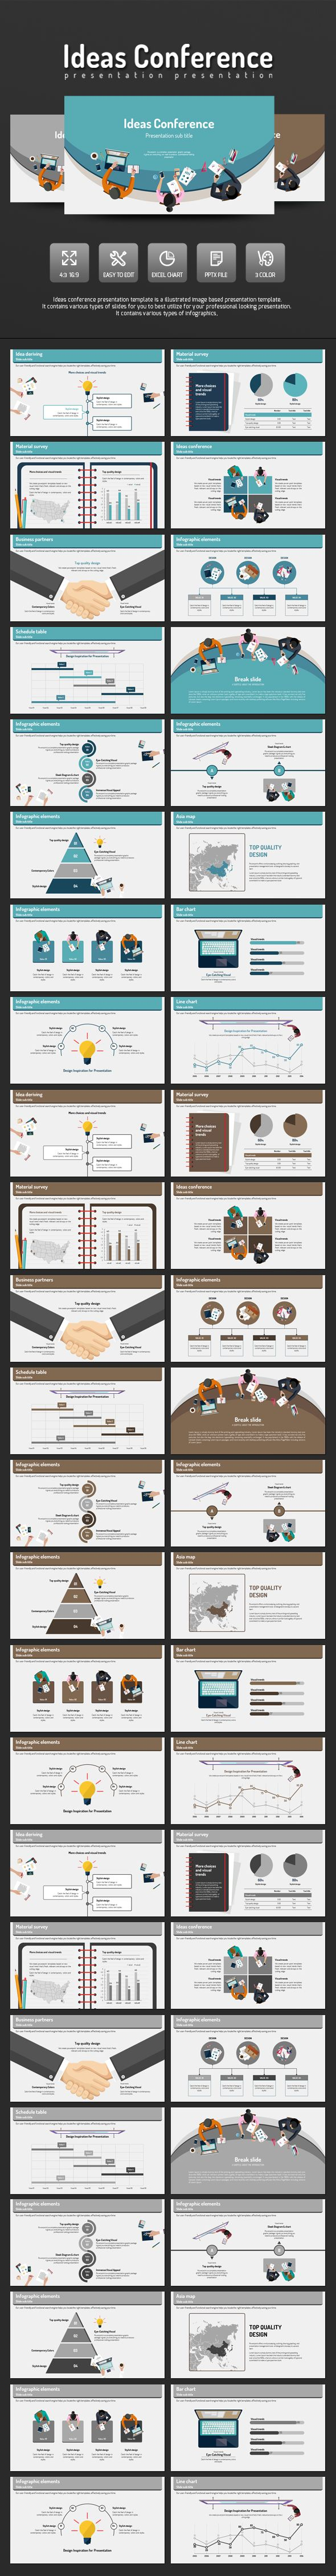 Ideas Conference PowerPoint Presentation Template #slides Download here: http://graphicriver.net/item/ideas-conference/14552958?ref=ksioks